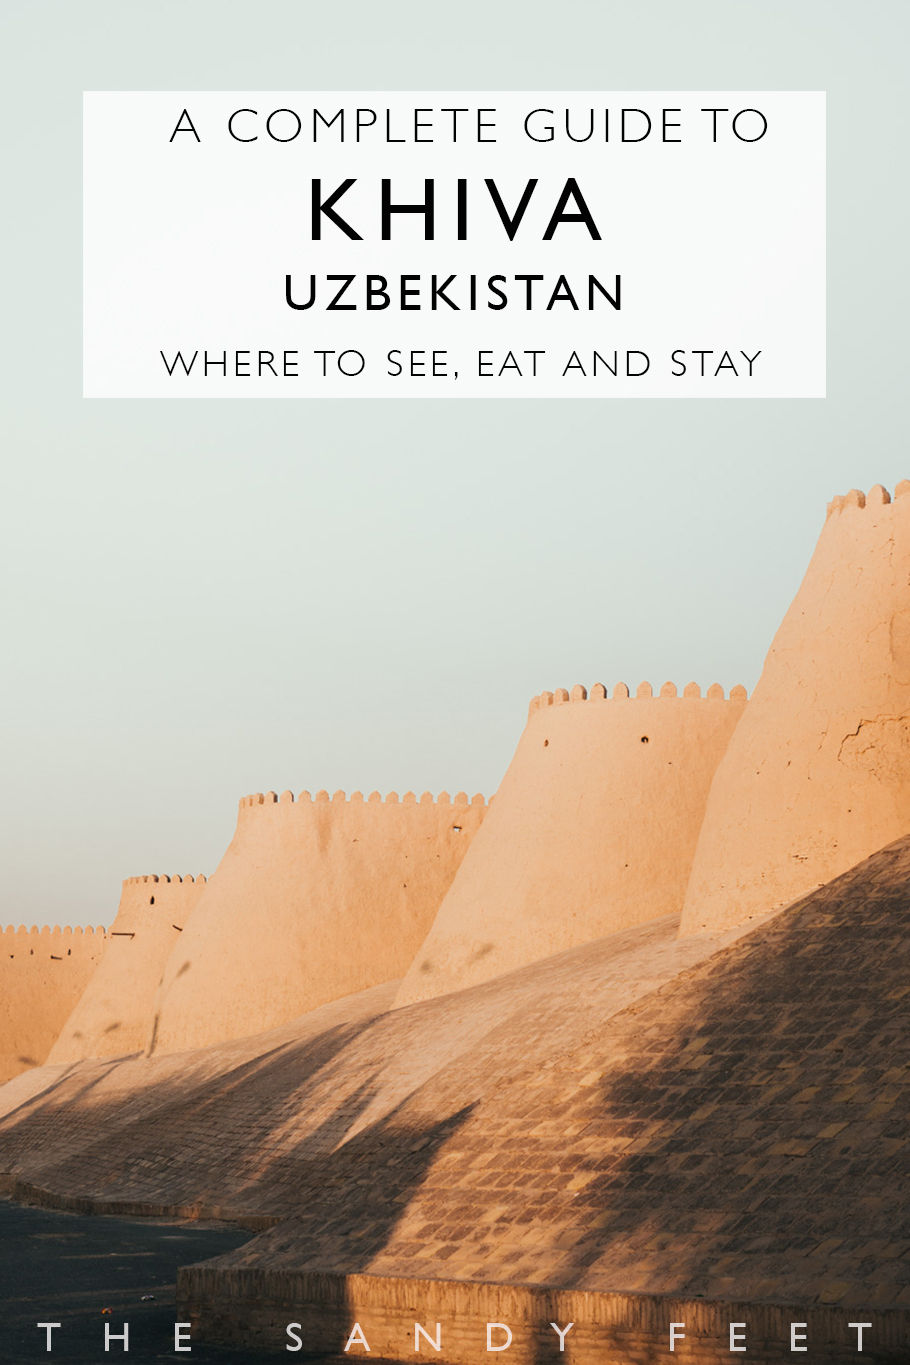 A Short Guide To Khiva: Our Favorite Town On Uzbekistan's Silk Road